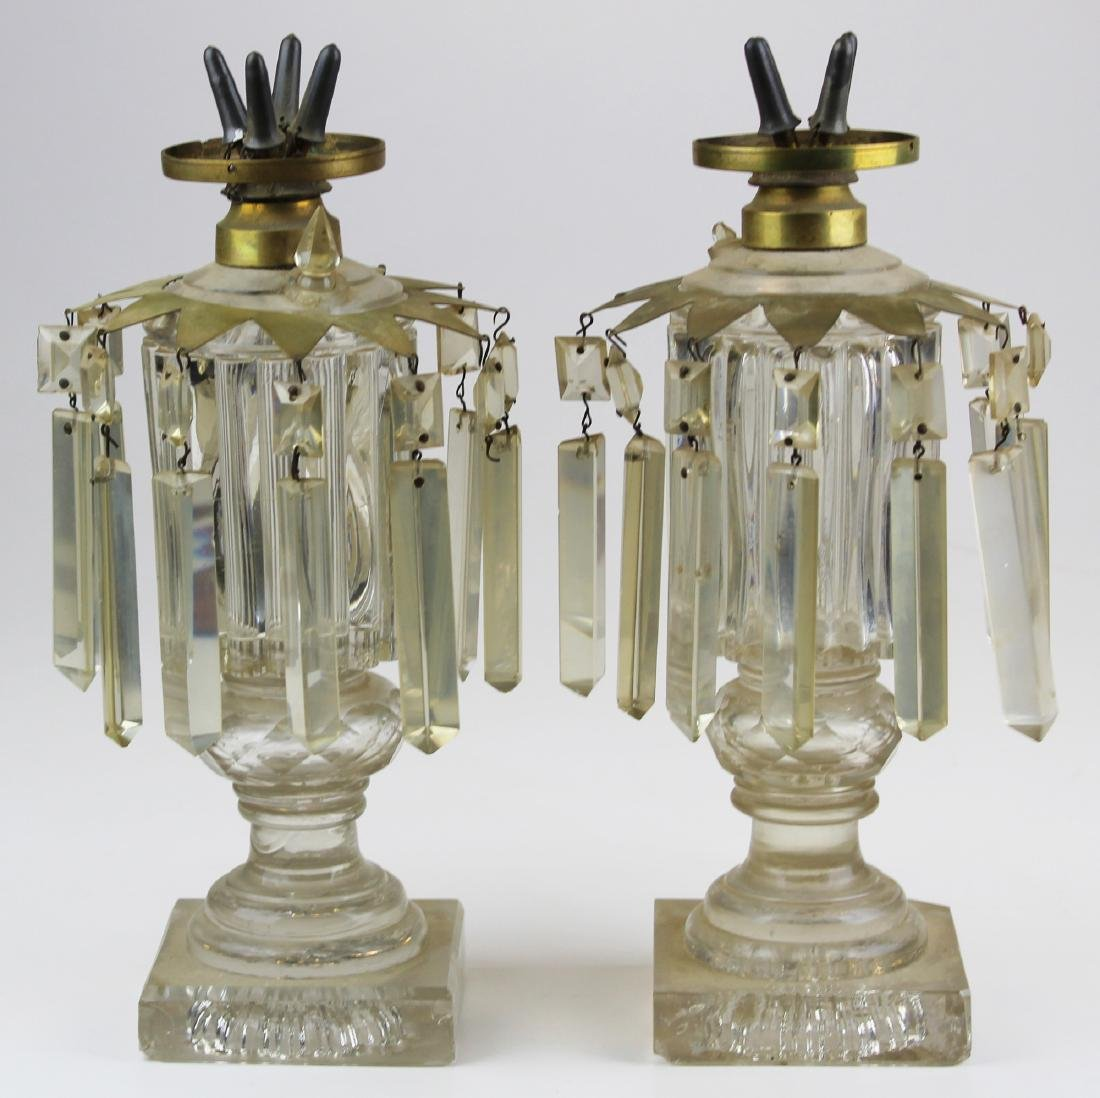 Rare pair of clear whale oil lamps with 4 burner